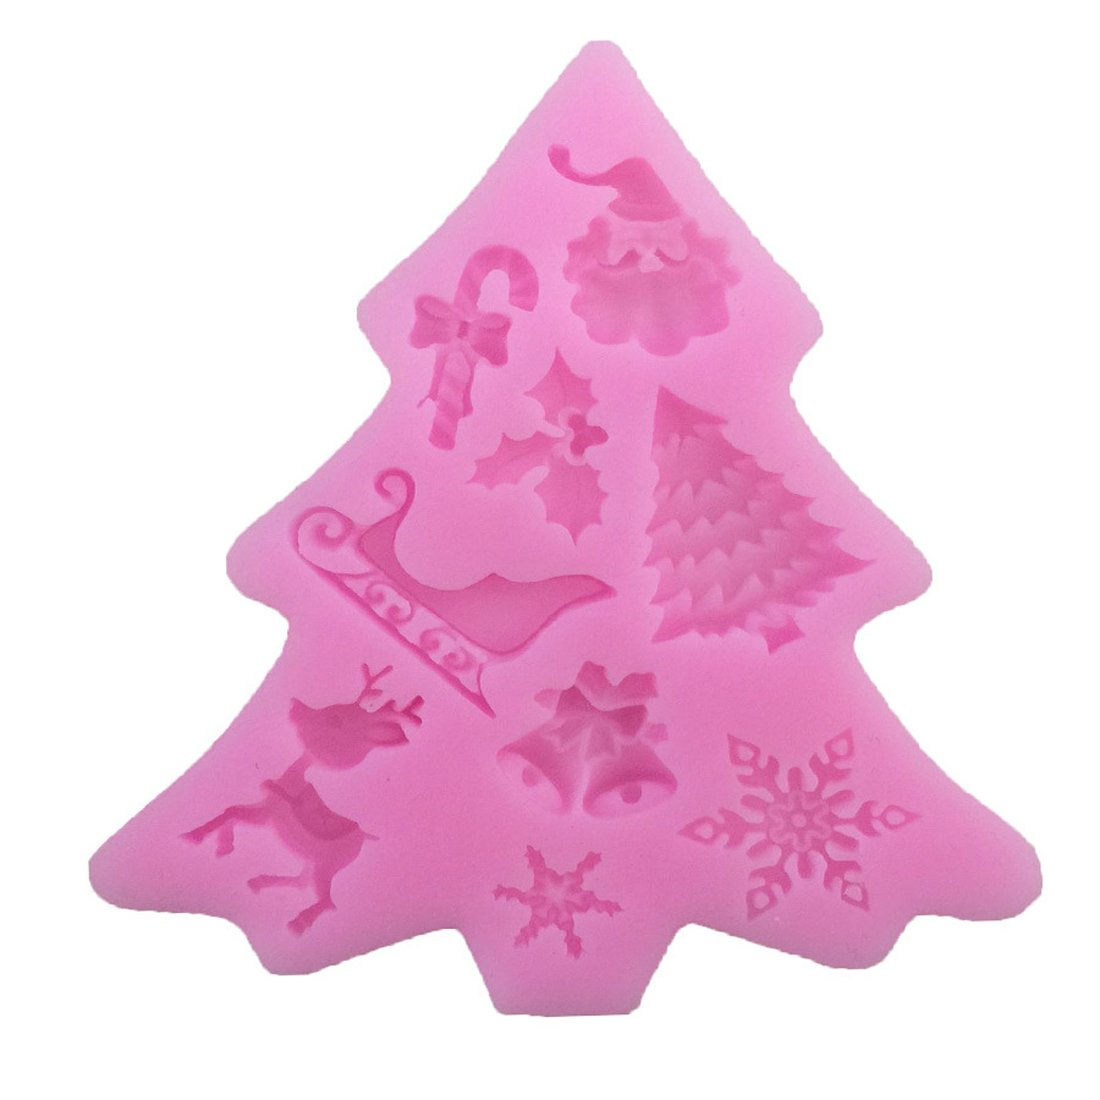 joyliveCY Christmas Decorating Cake Candy Fondant Silicone Mould CY-Buity